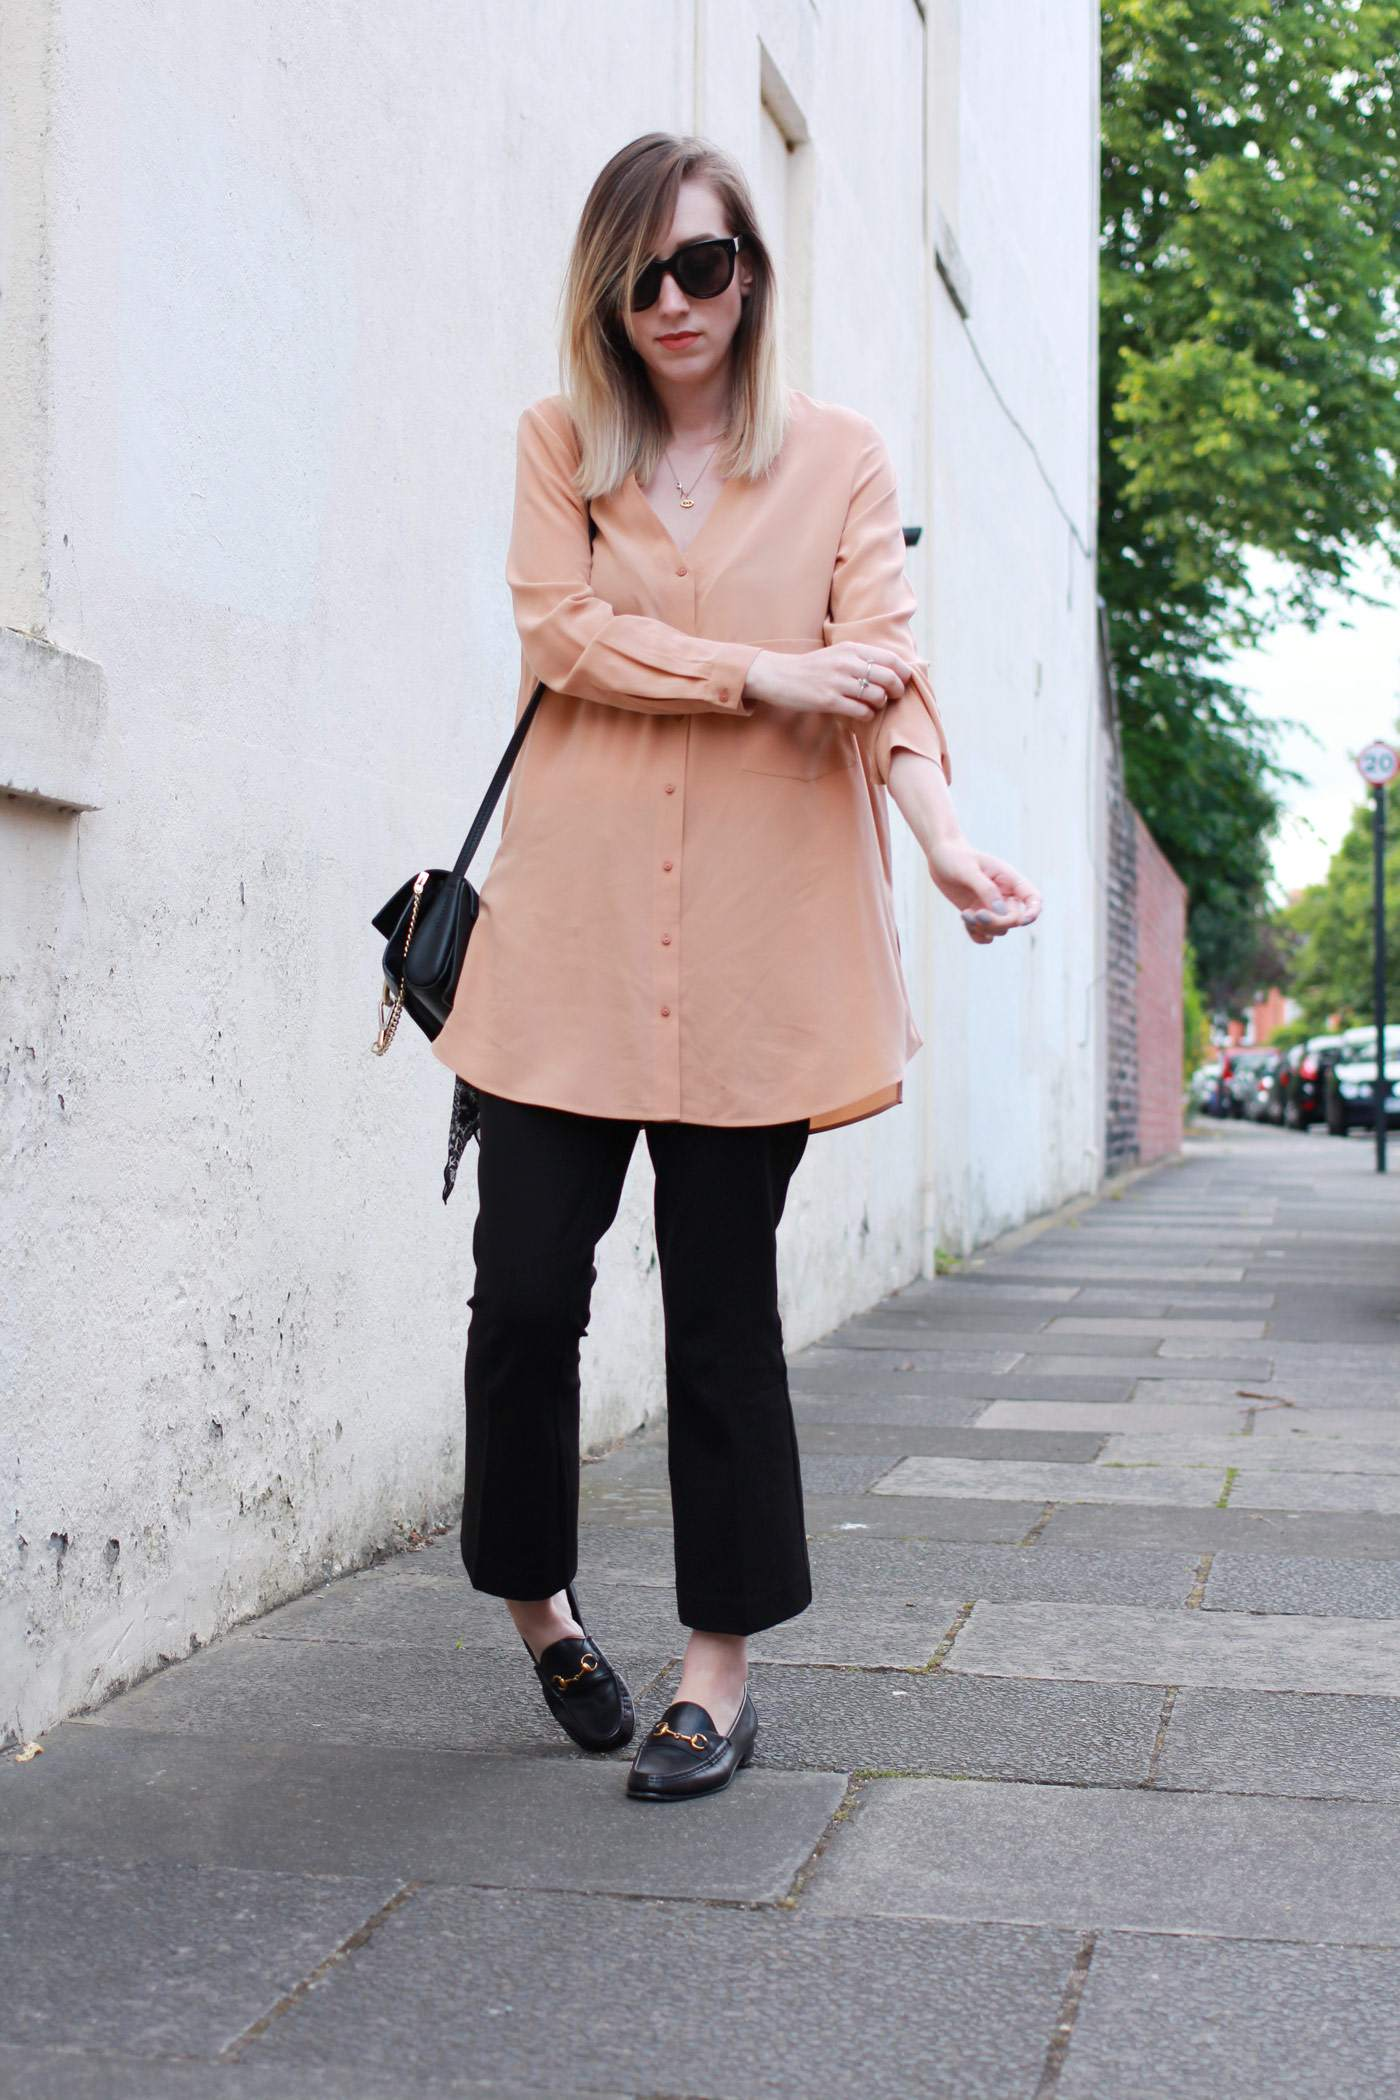 Boden-flared-trousers-COS-peach-shirt-Chloe-faye-bag-black-gucci-loafers-3